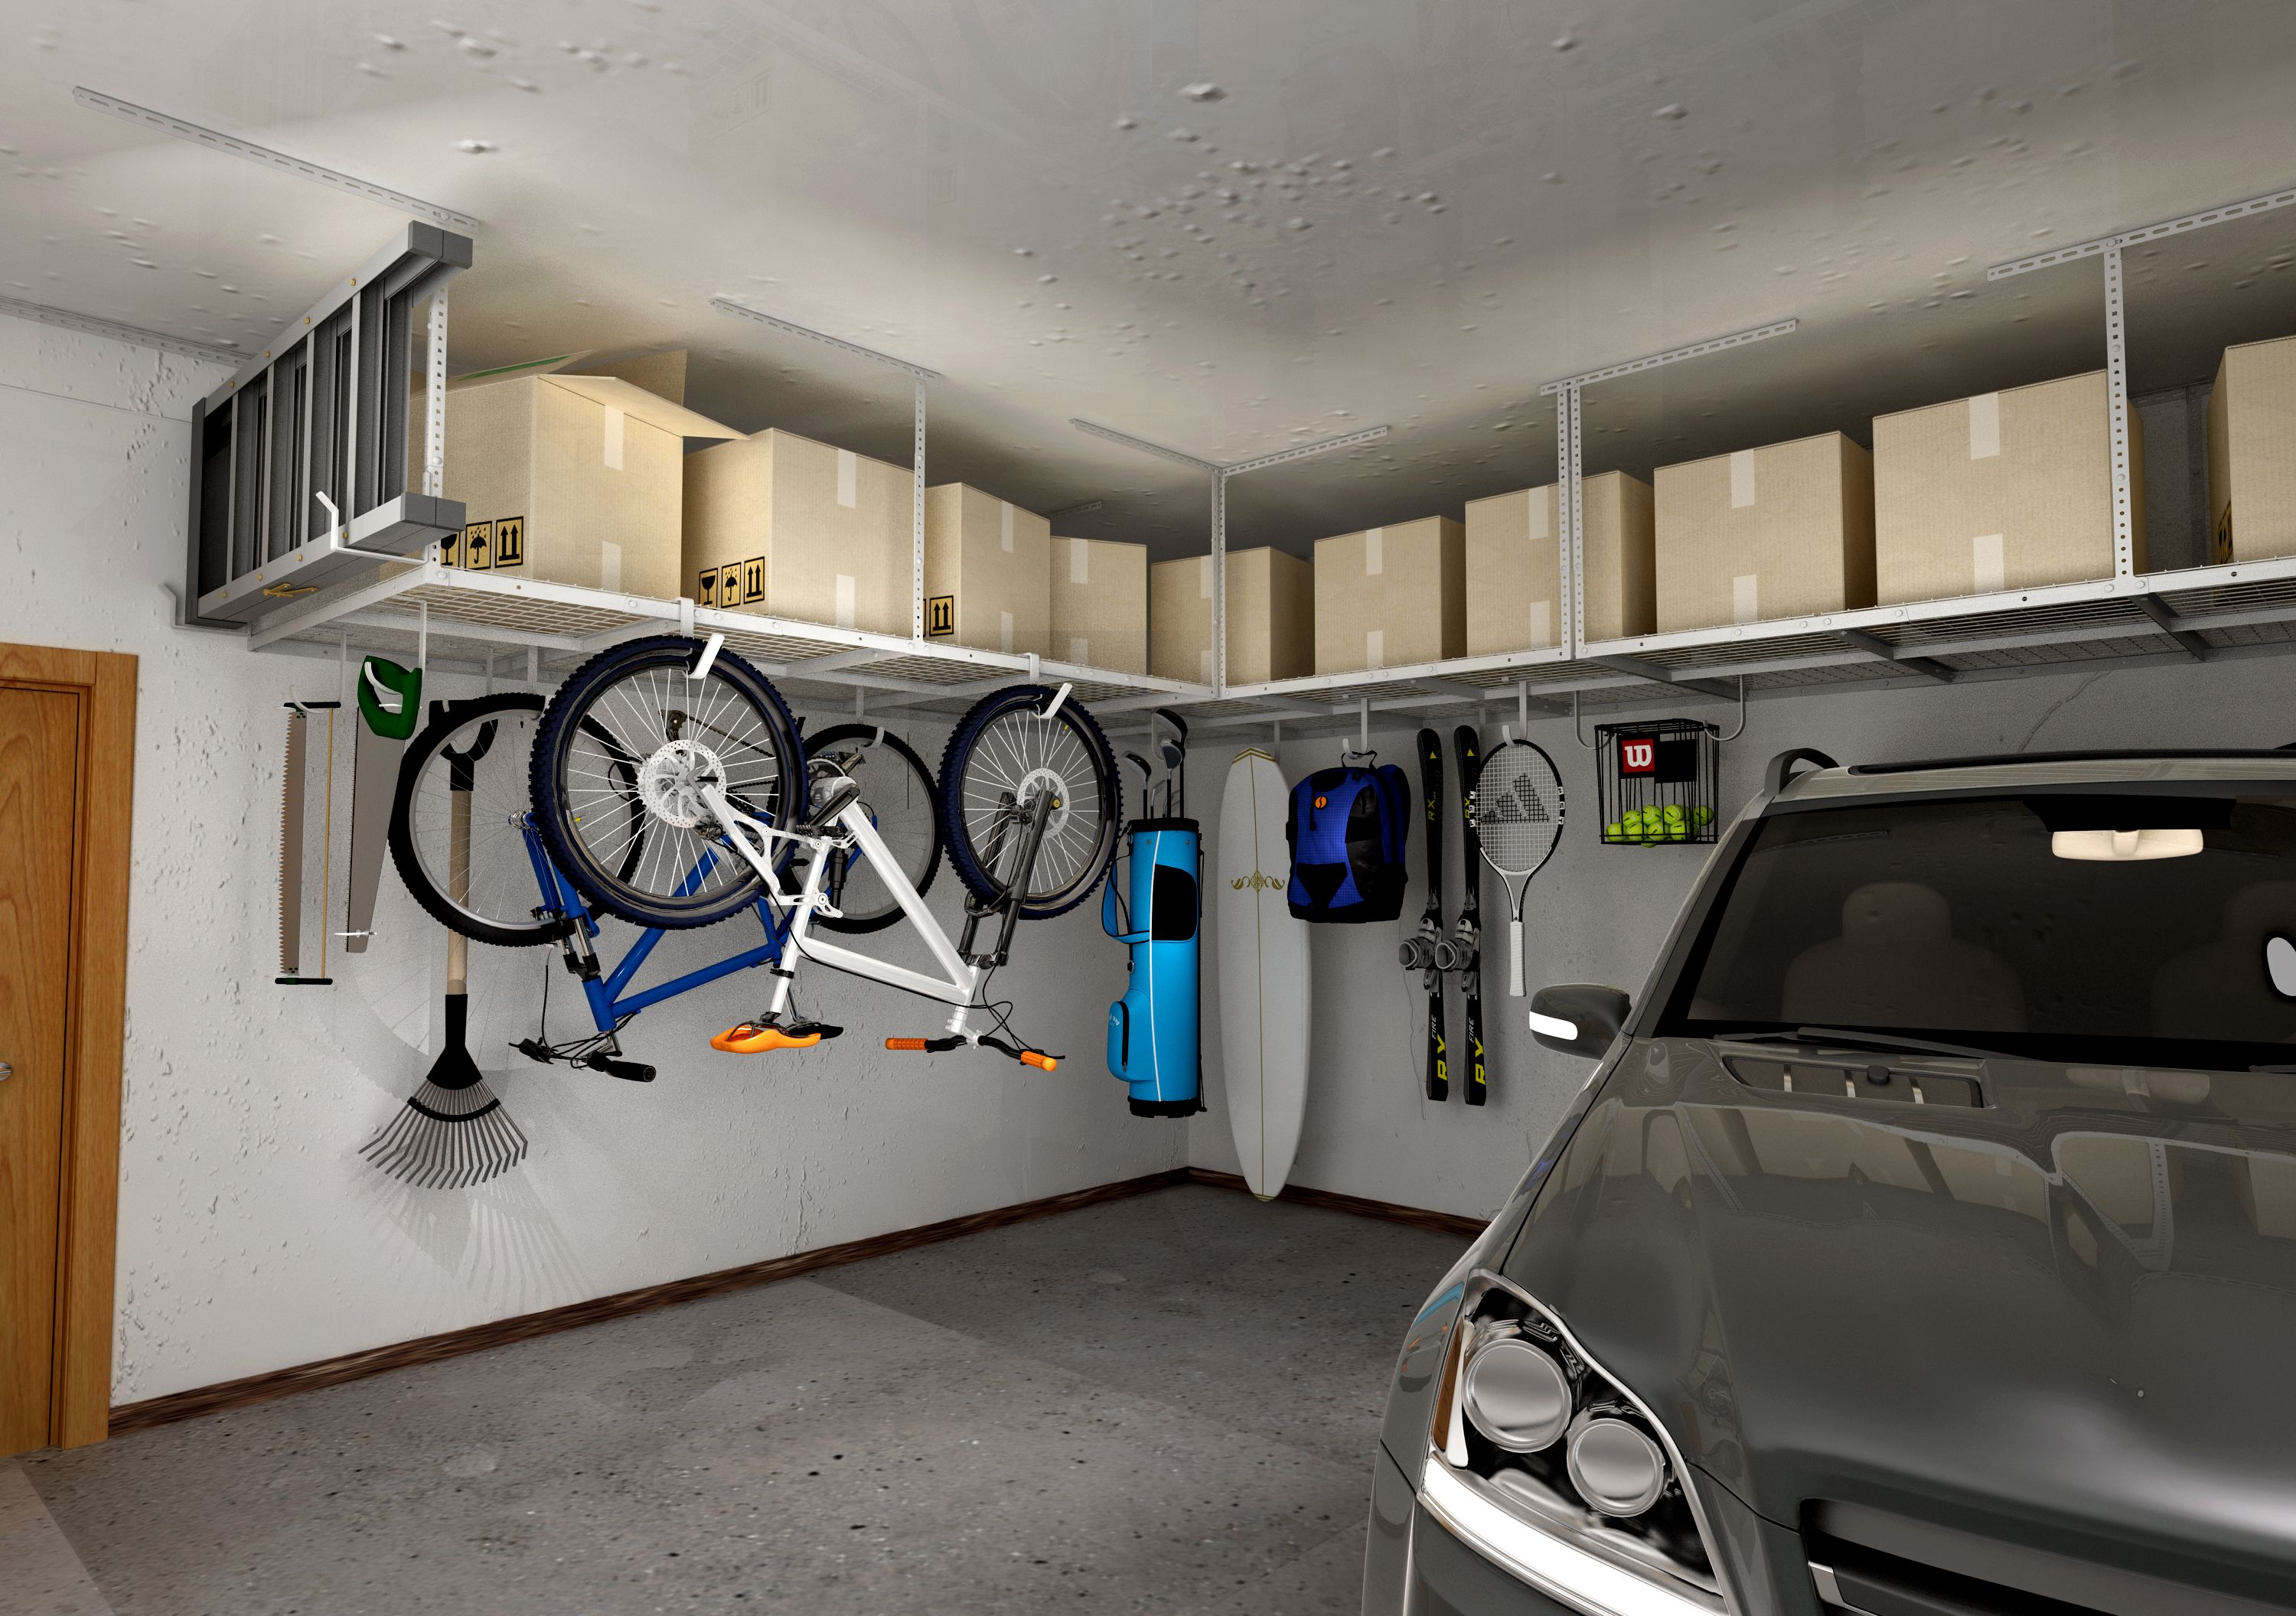 Ceiling Racks In 2020 Garage Storage Racks Overhead Garage Storage Diy Overhead Garage Storage